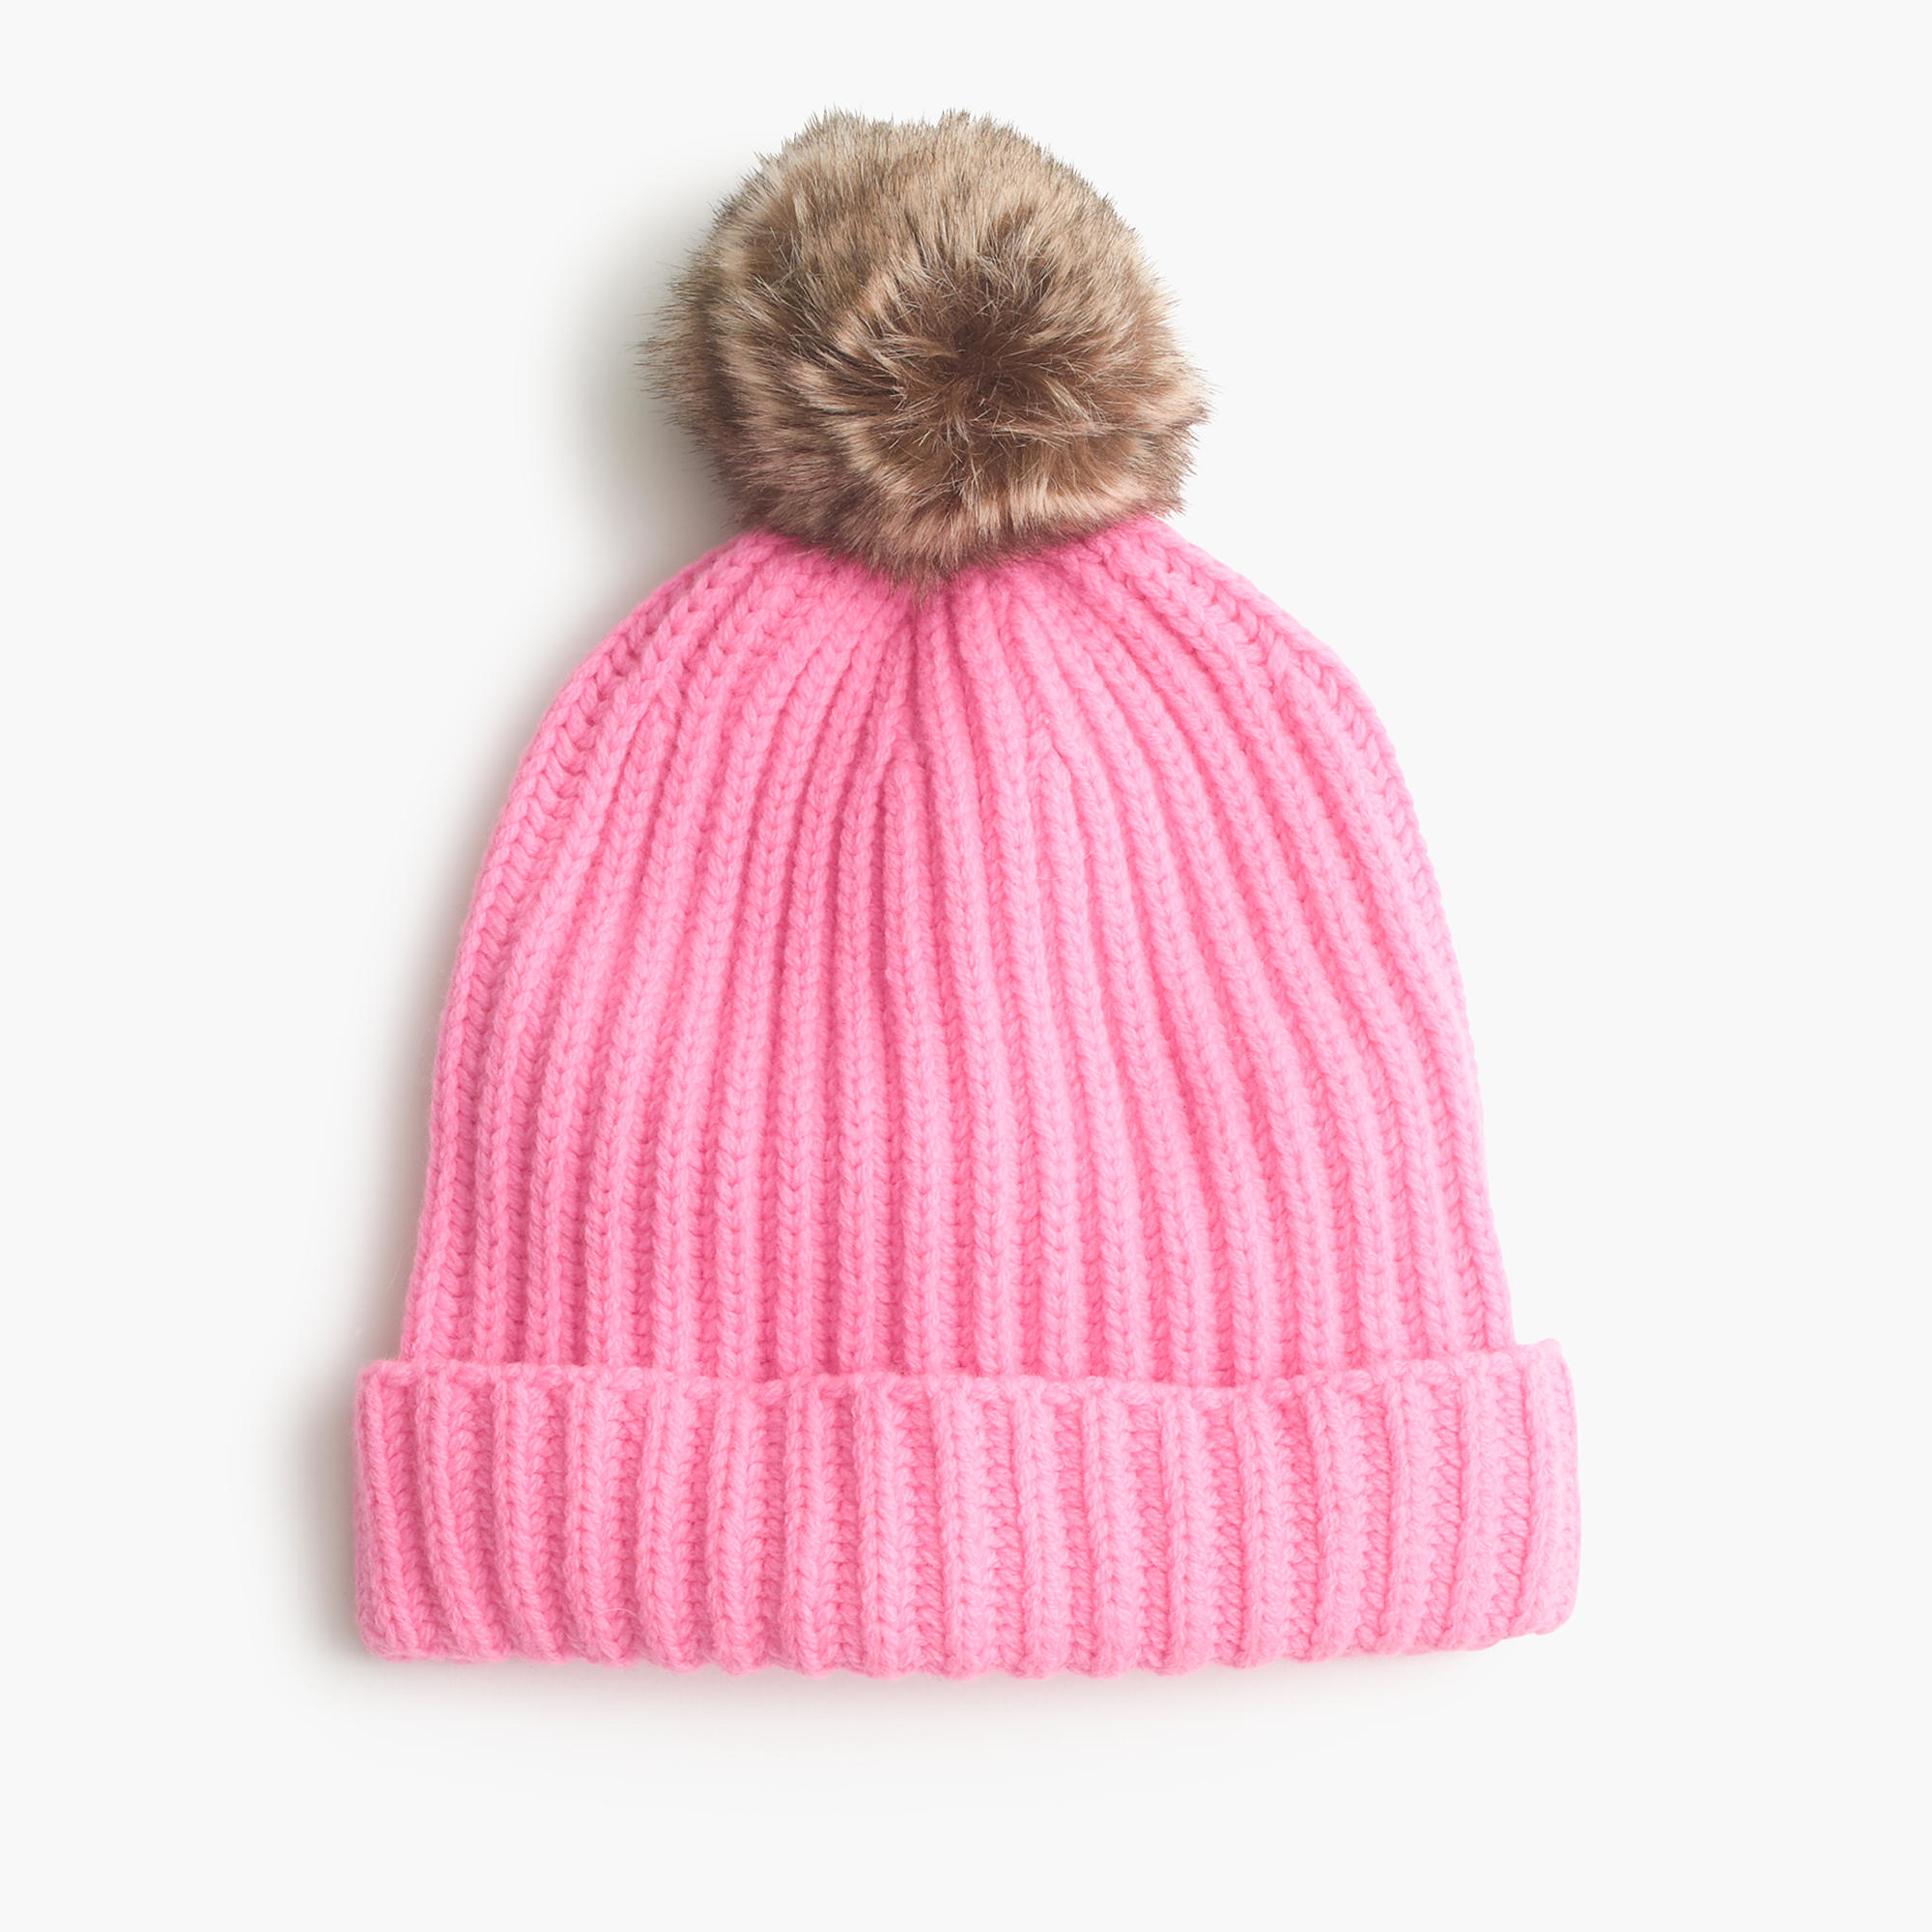 aedee822ad2e49 J.Crew Pom-pom Beanie With Faux Fur in Pink - Lyst